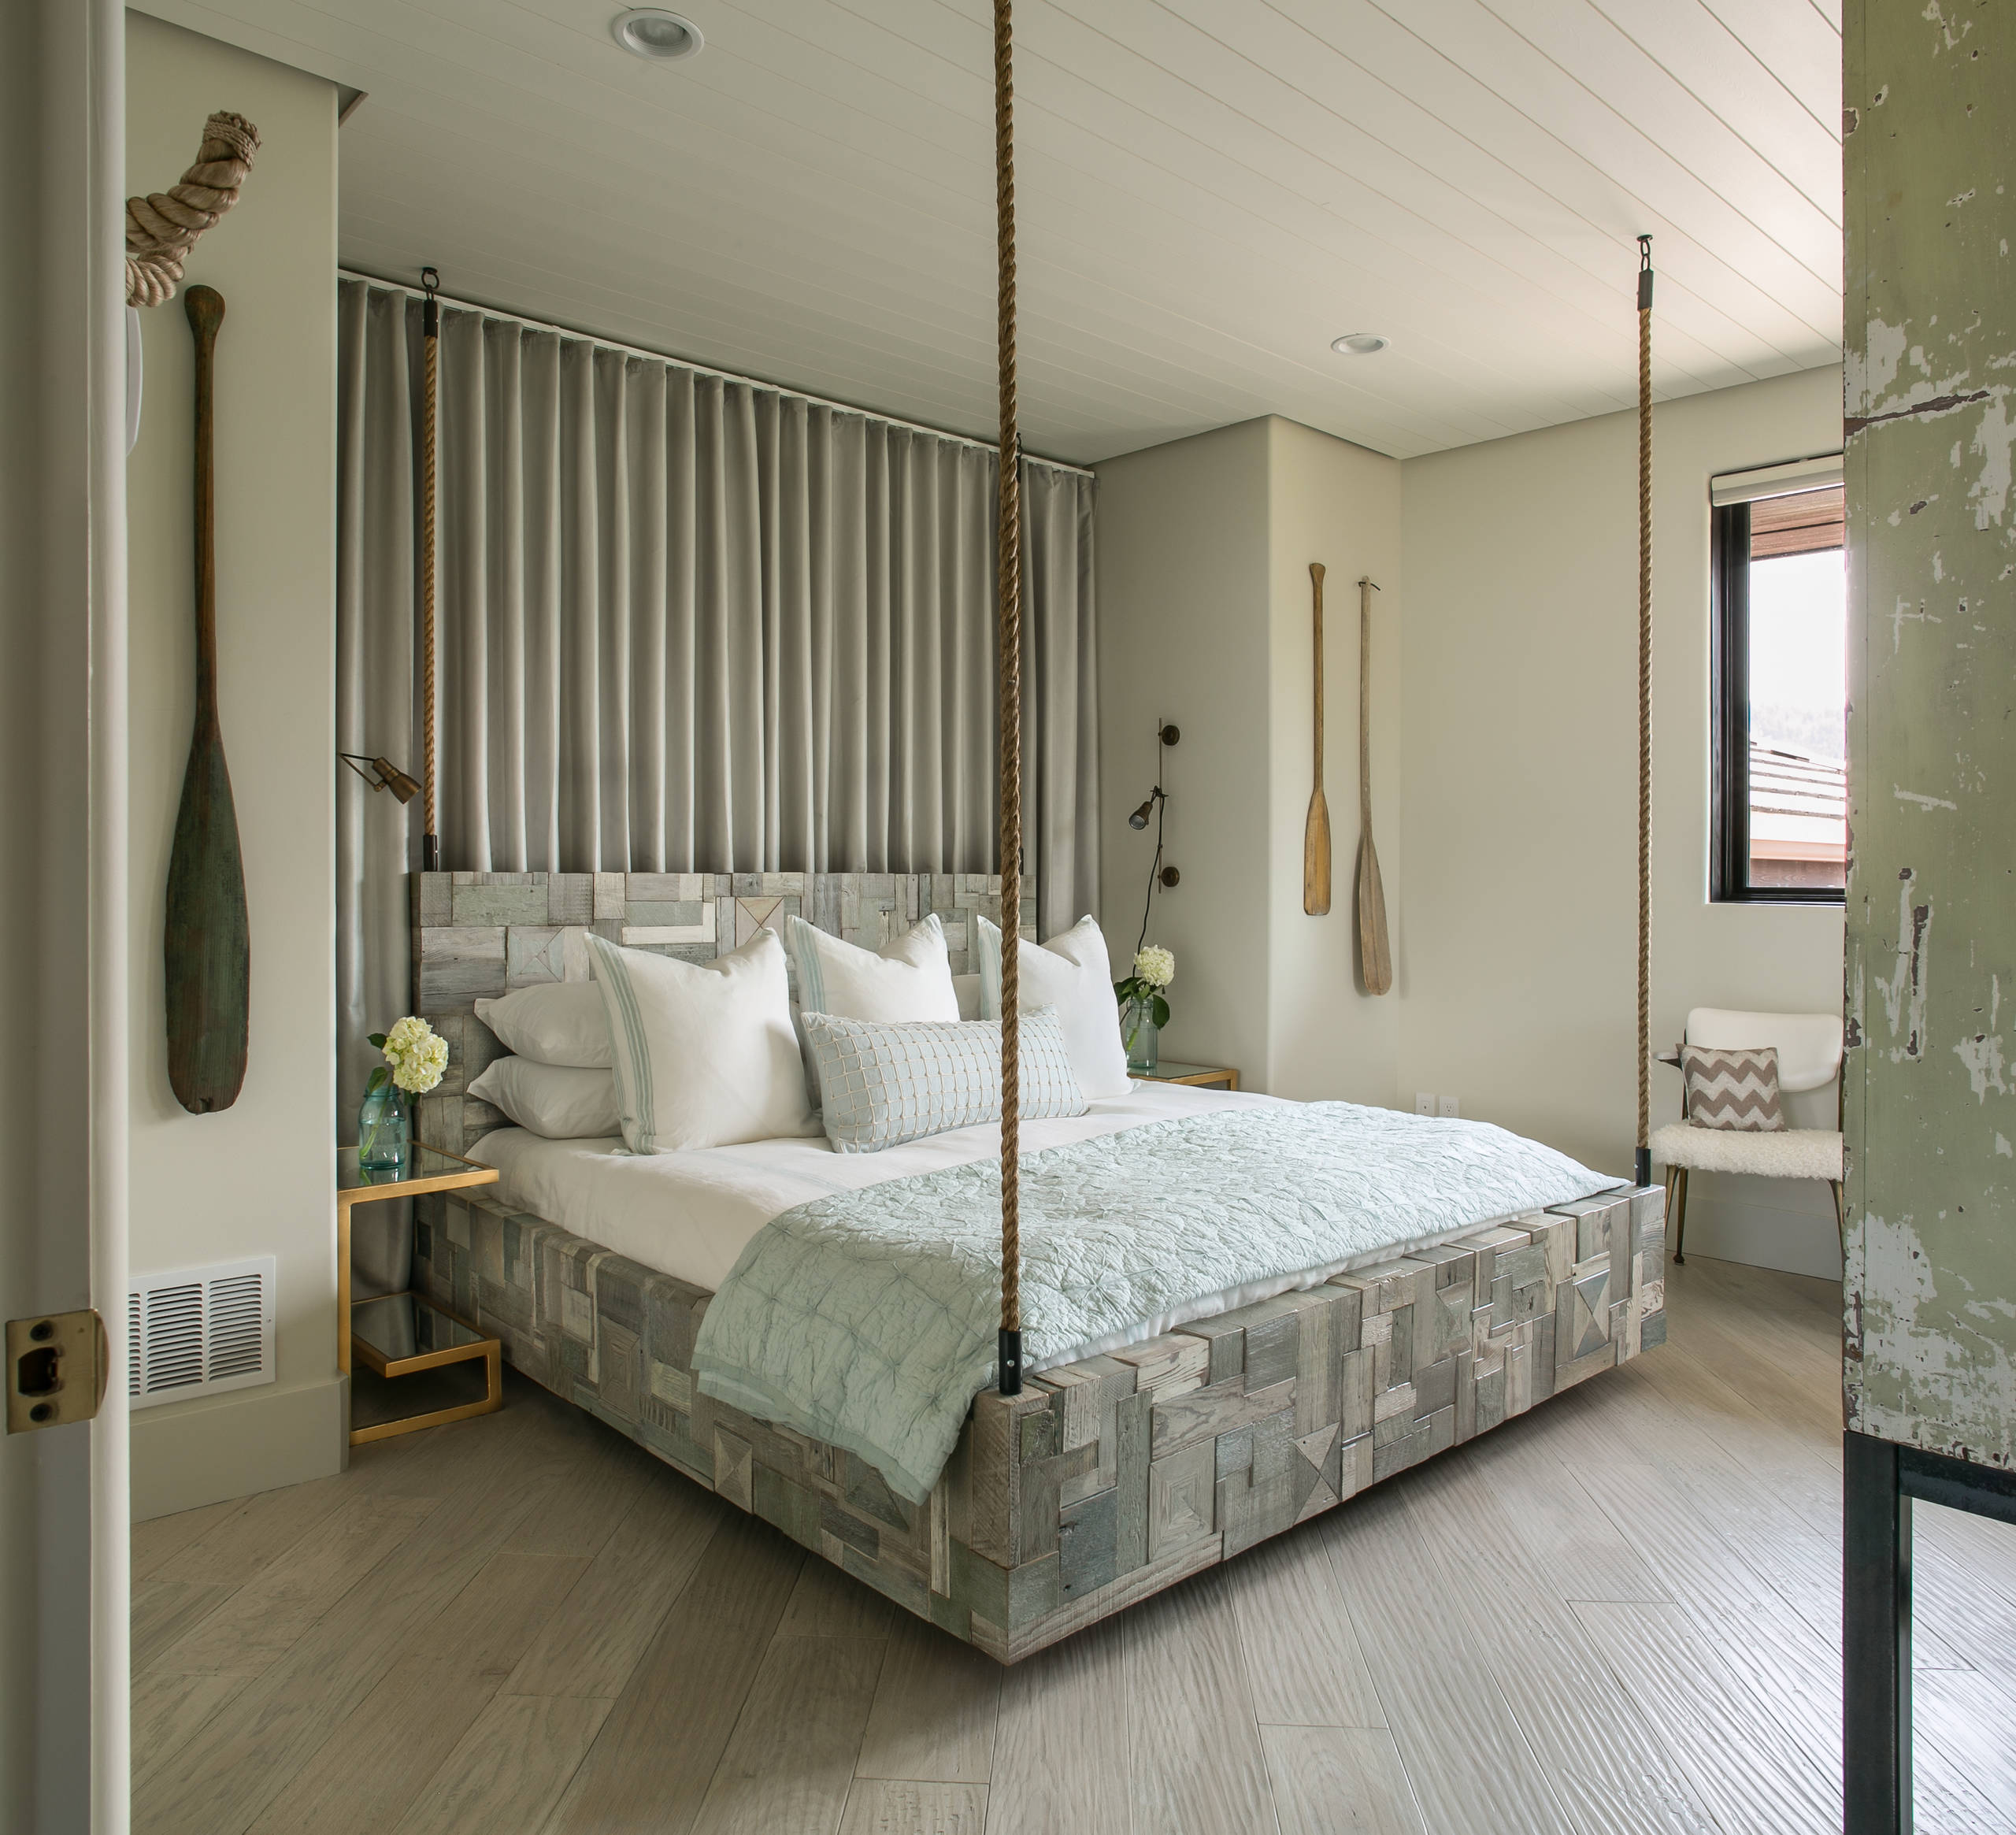 Inspiring Bedroom Decor with Reclaimed Wood Bed Ideas: Accessories For Guest Bedroom With Nautical Rope And Reclaimed Wood Bed Also Hanging Bed Plus Bed Pillows With Tongue And Groove Ceiling Plus Recessed Lighting Also Hardwood Flooring